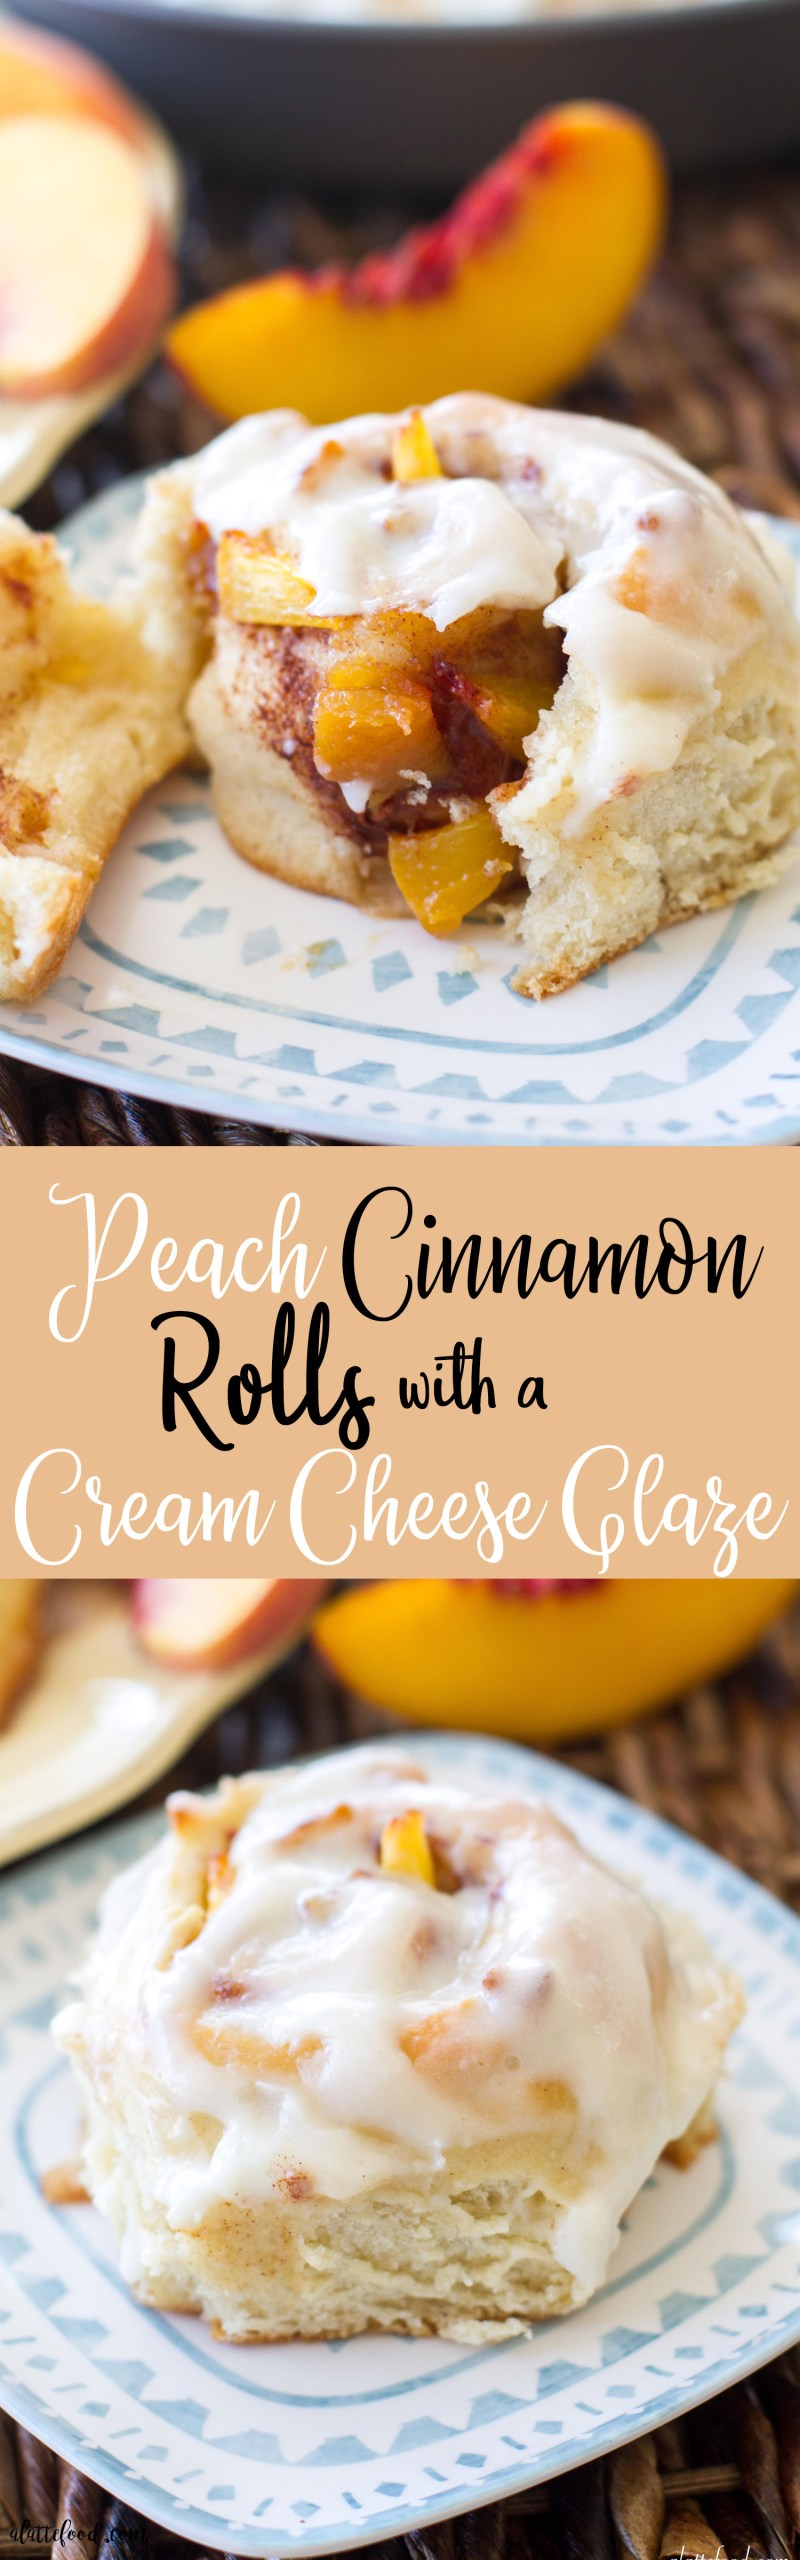 These fluffy, gooey cinnamon rolls are filled with fresh peaches, peach jam, and topped with a rich cream cheese glaze. These peaches and cream cinnamon rolls are love at first bite. Homemade peach cinnamon rolls are the perfect summer breakfast or make ahead breakfast!how to make cinnamon rolls, peach pie, easy cinnamon roll recipe